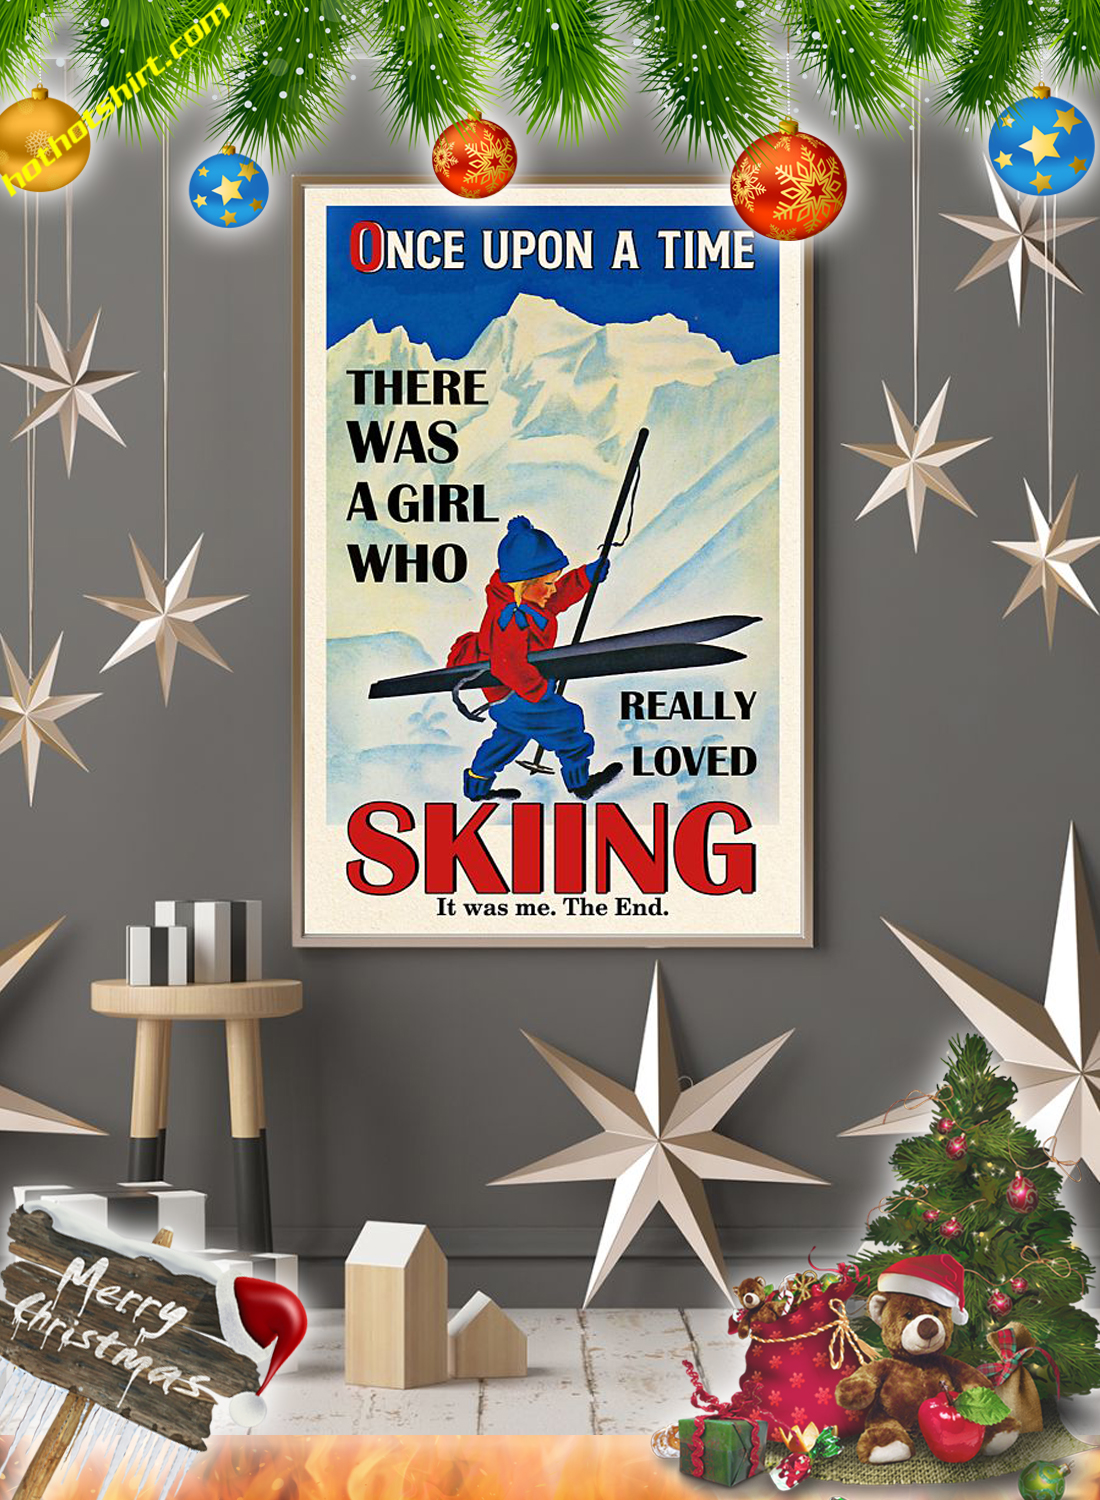 Once upon a time there was a girl loved skiing poster 3